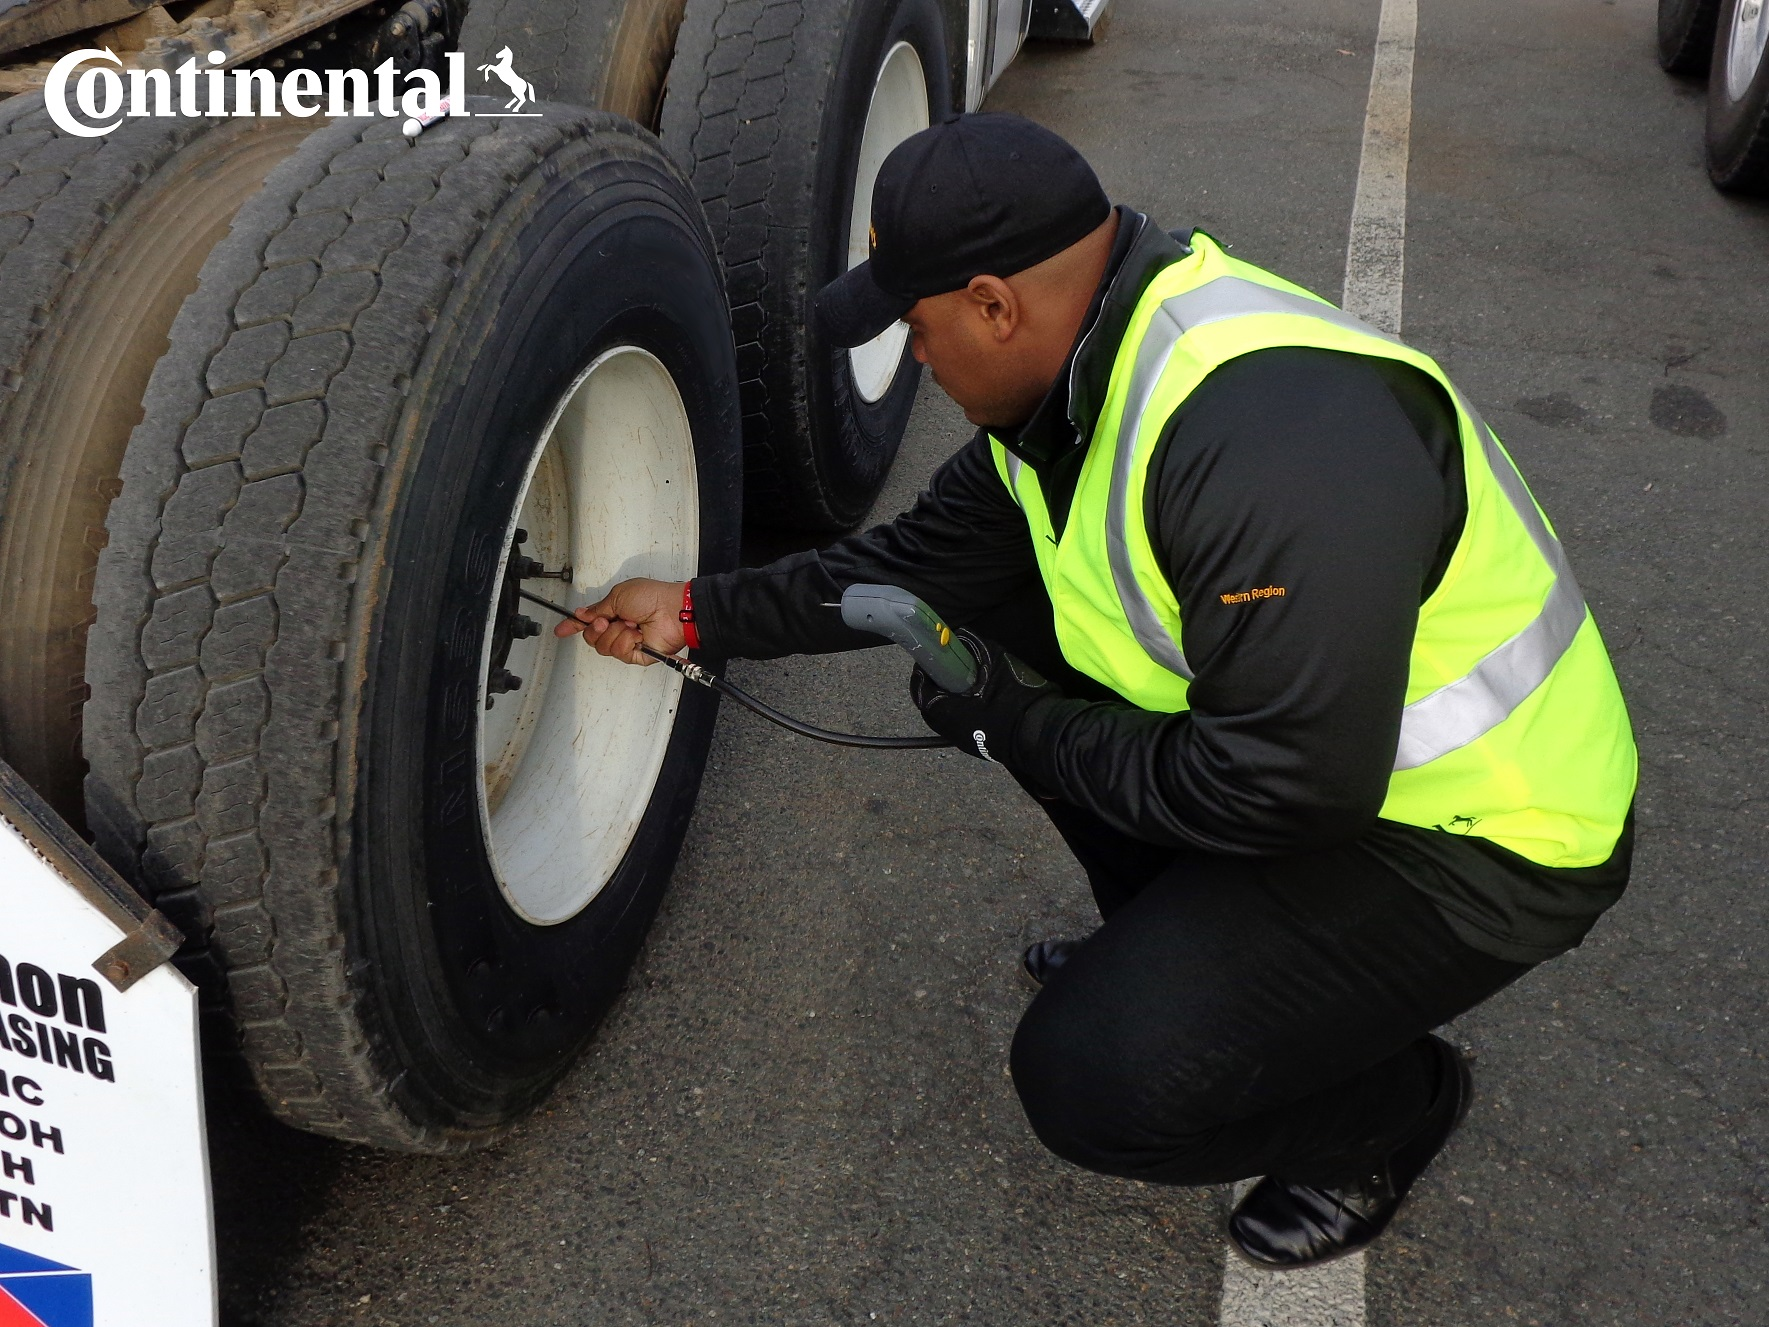 Continental Has Inspected 1 Million Tires With Its Digital Tool